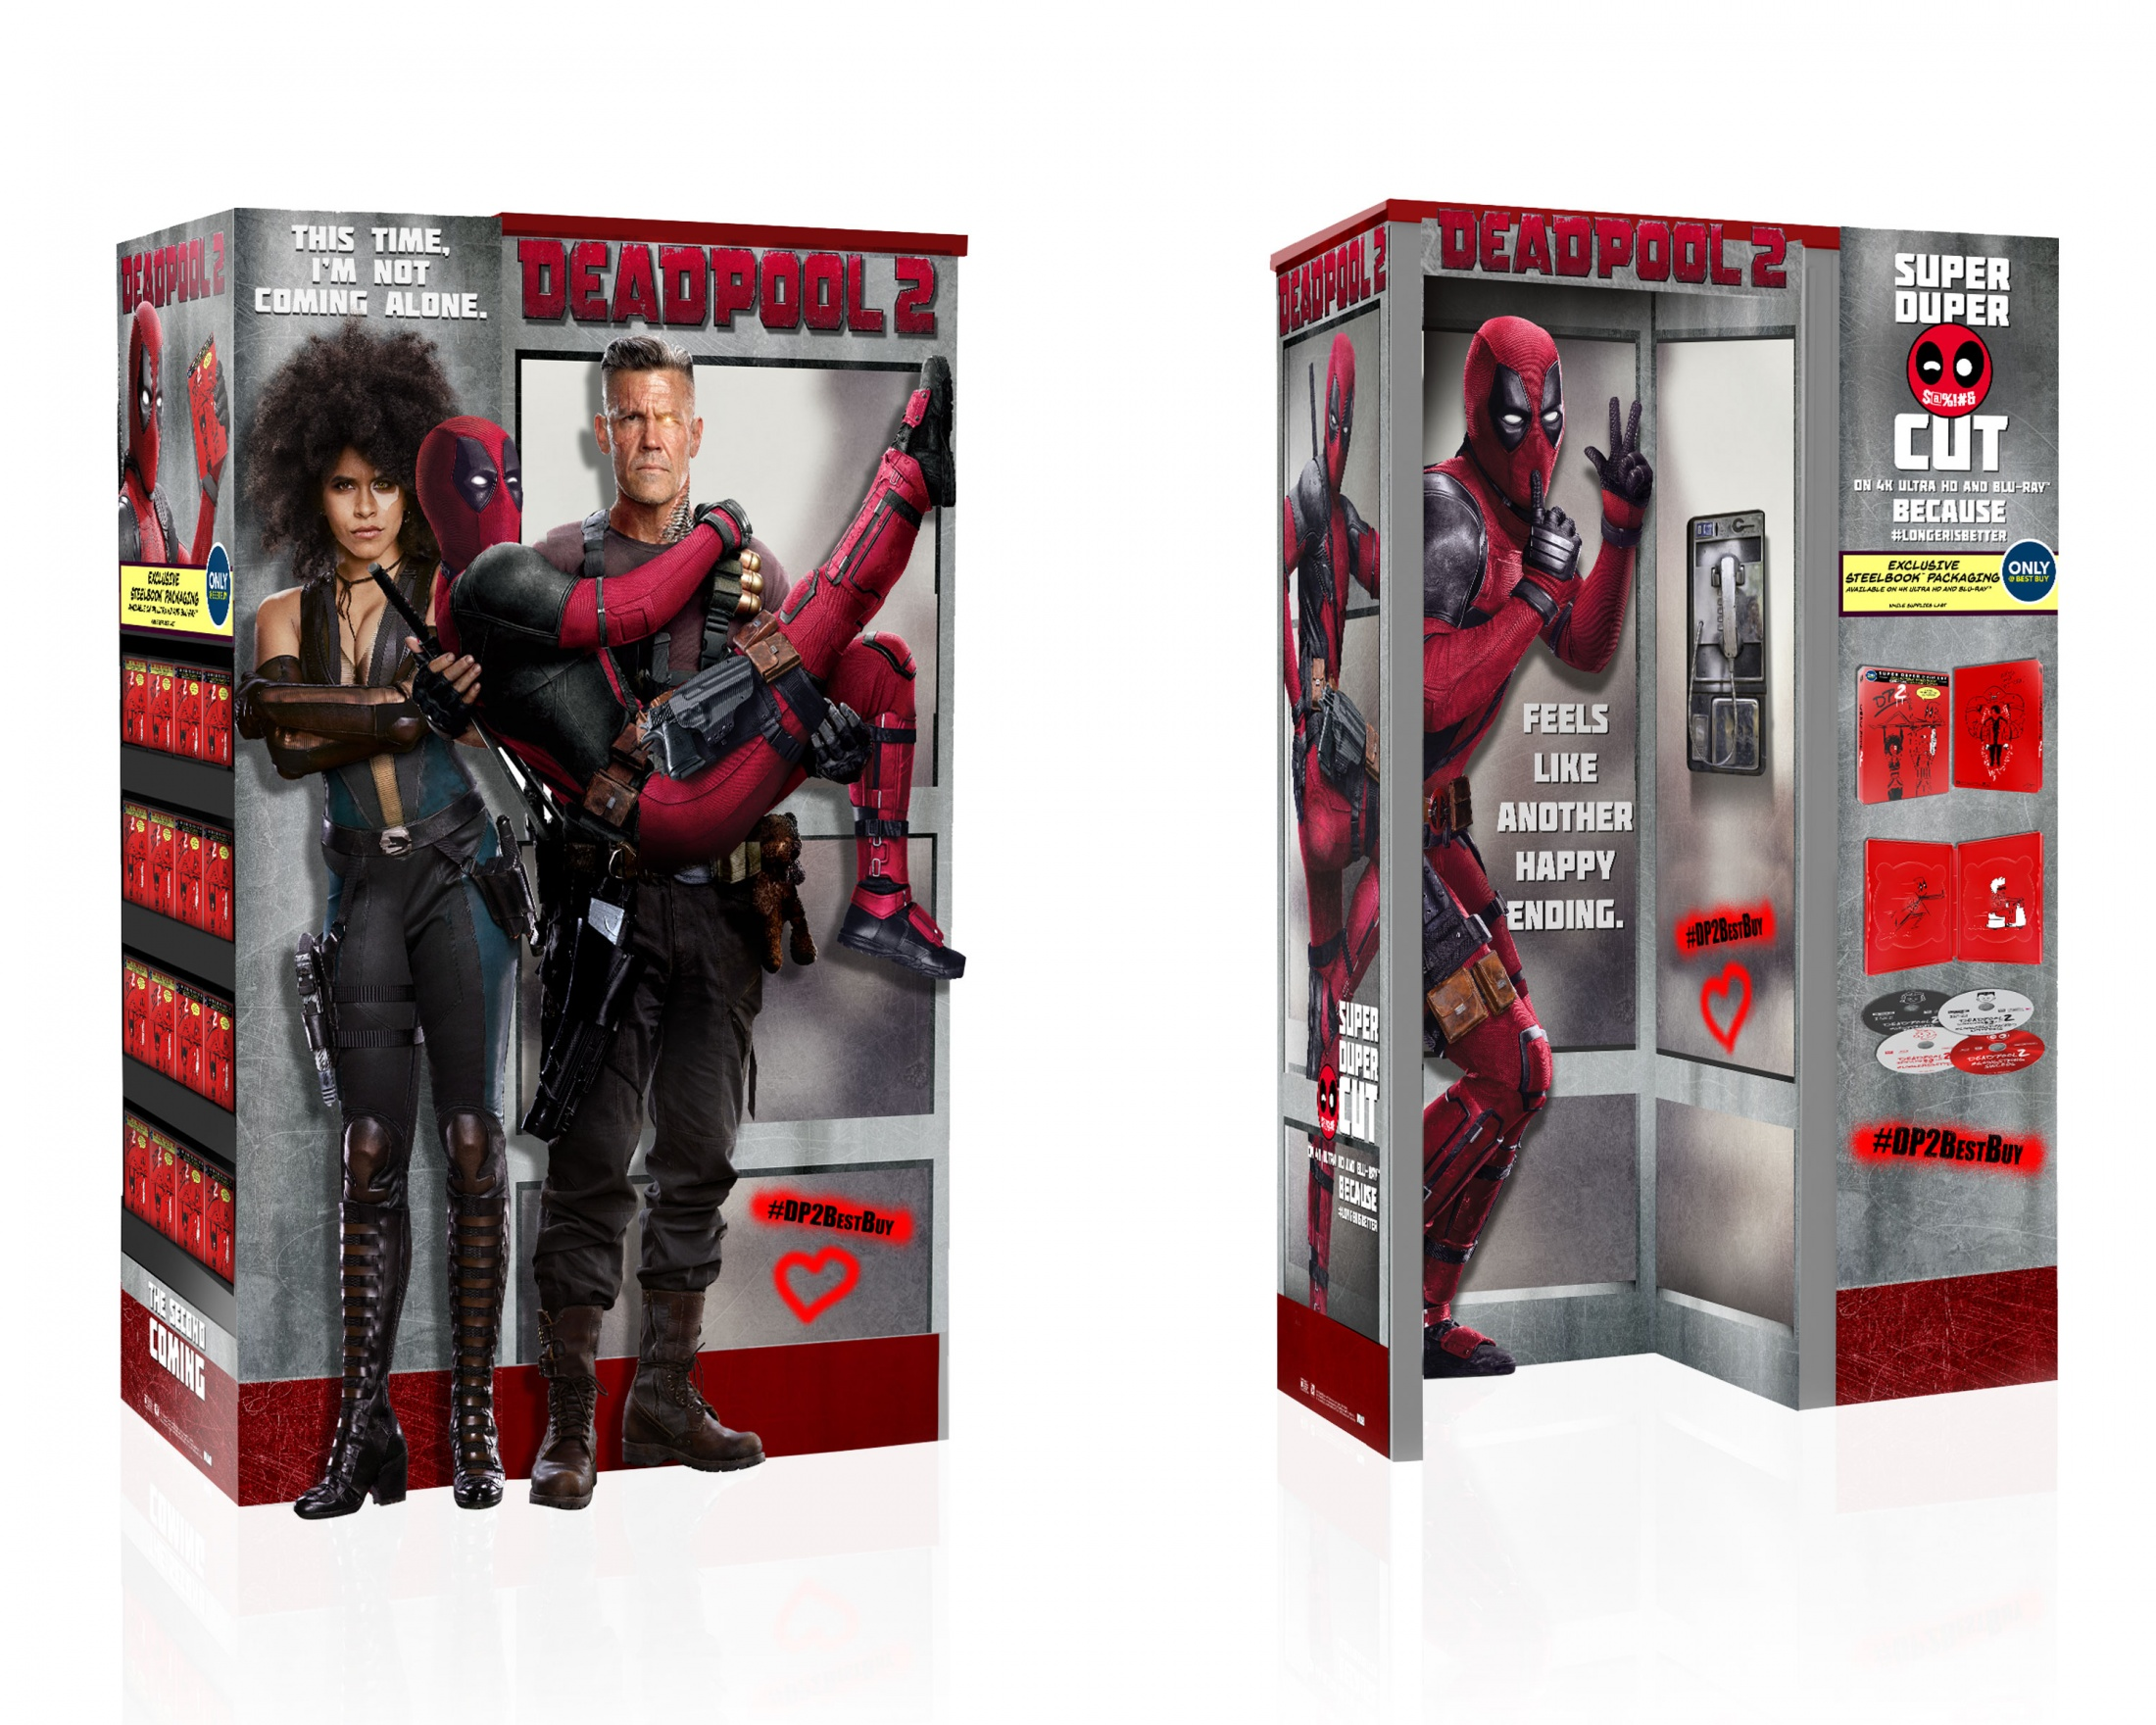 Image Media for Deadpool 2 BBY WOW Phone Booth